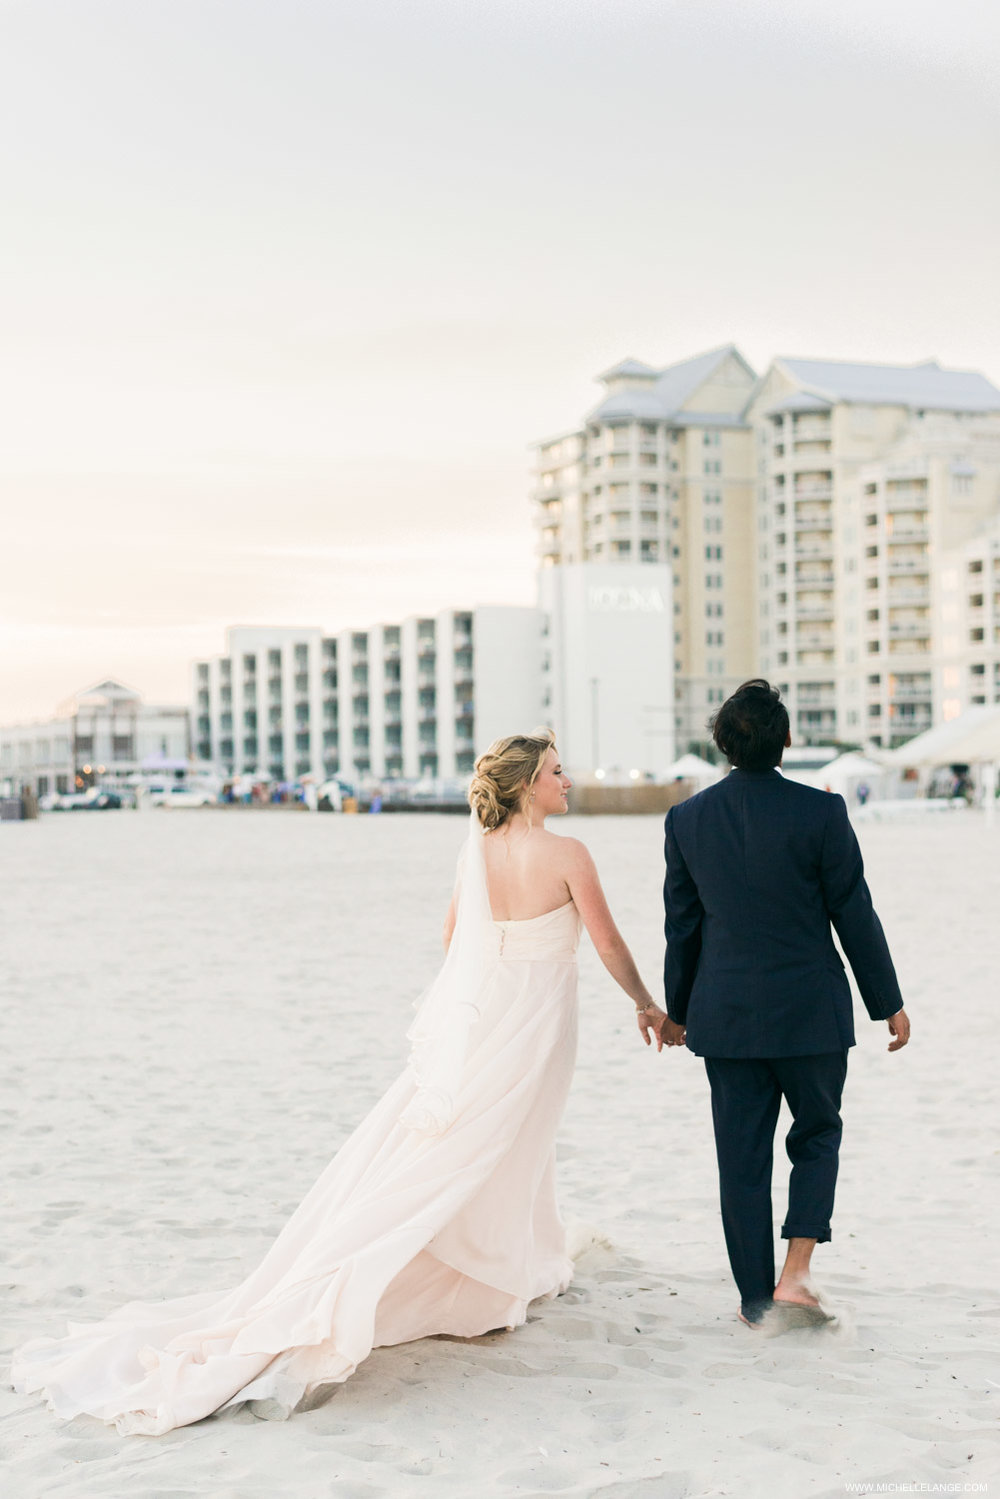 NJ Wedding at Hotel Icona Cape May Beach